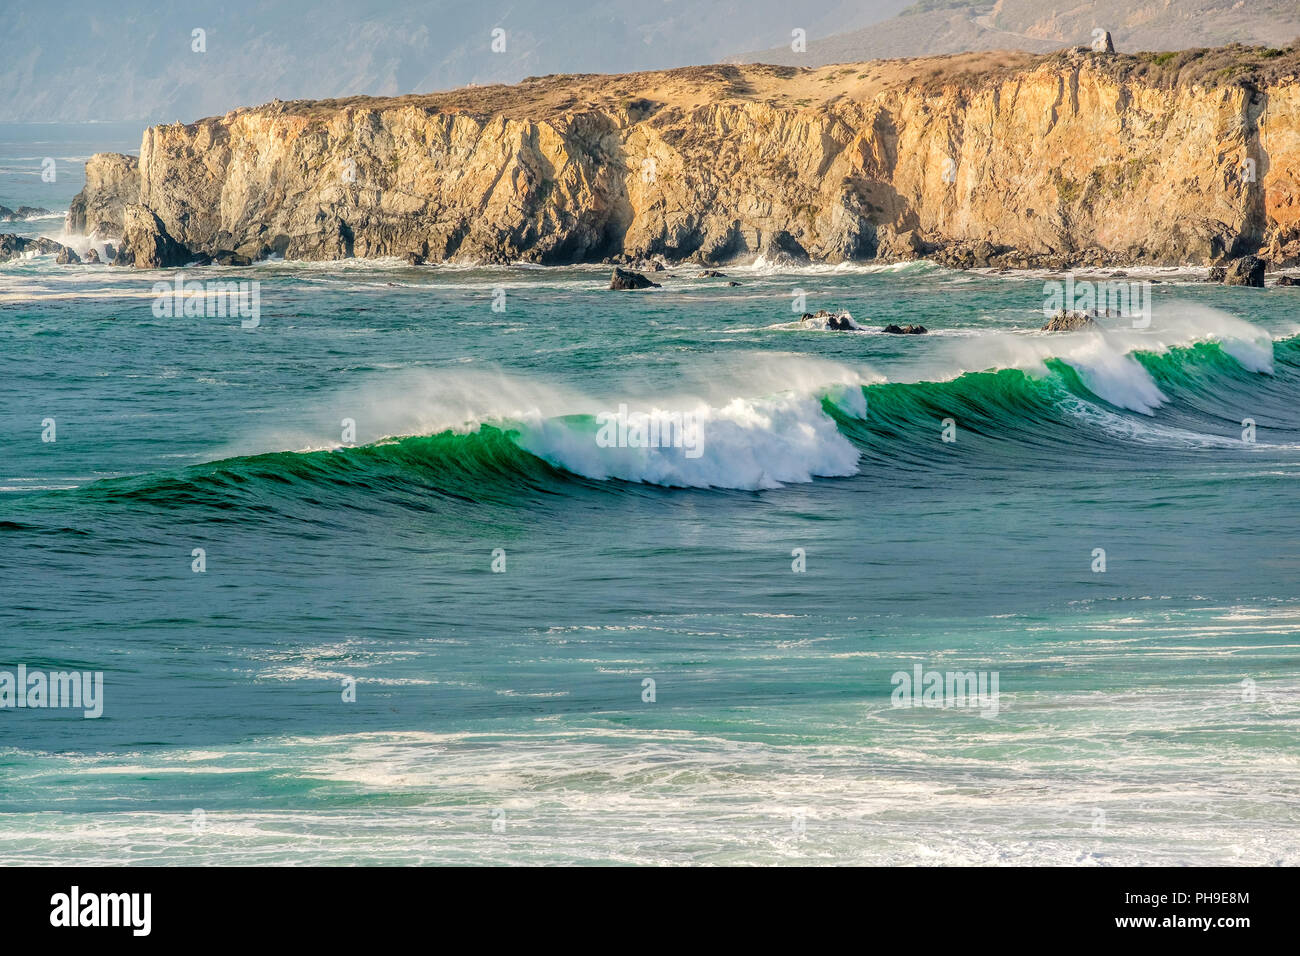 USA Pacific coast, Sand Dollar Beach, Big Sur, California - Stock Image